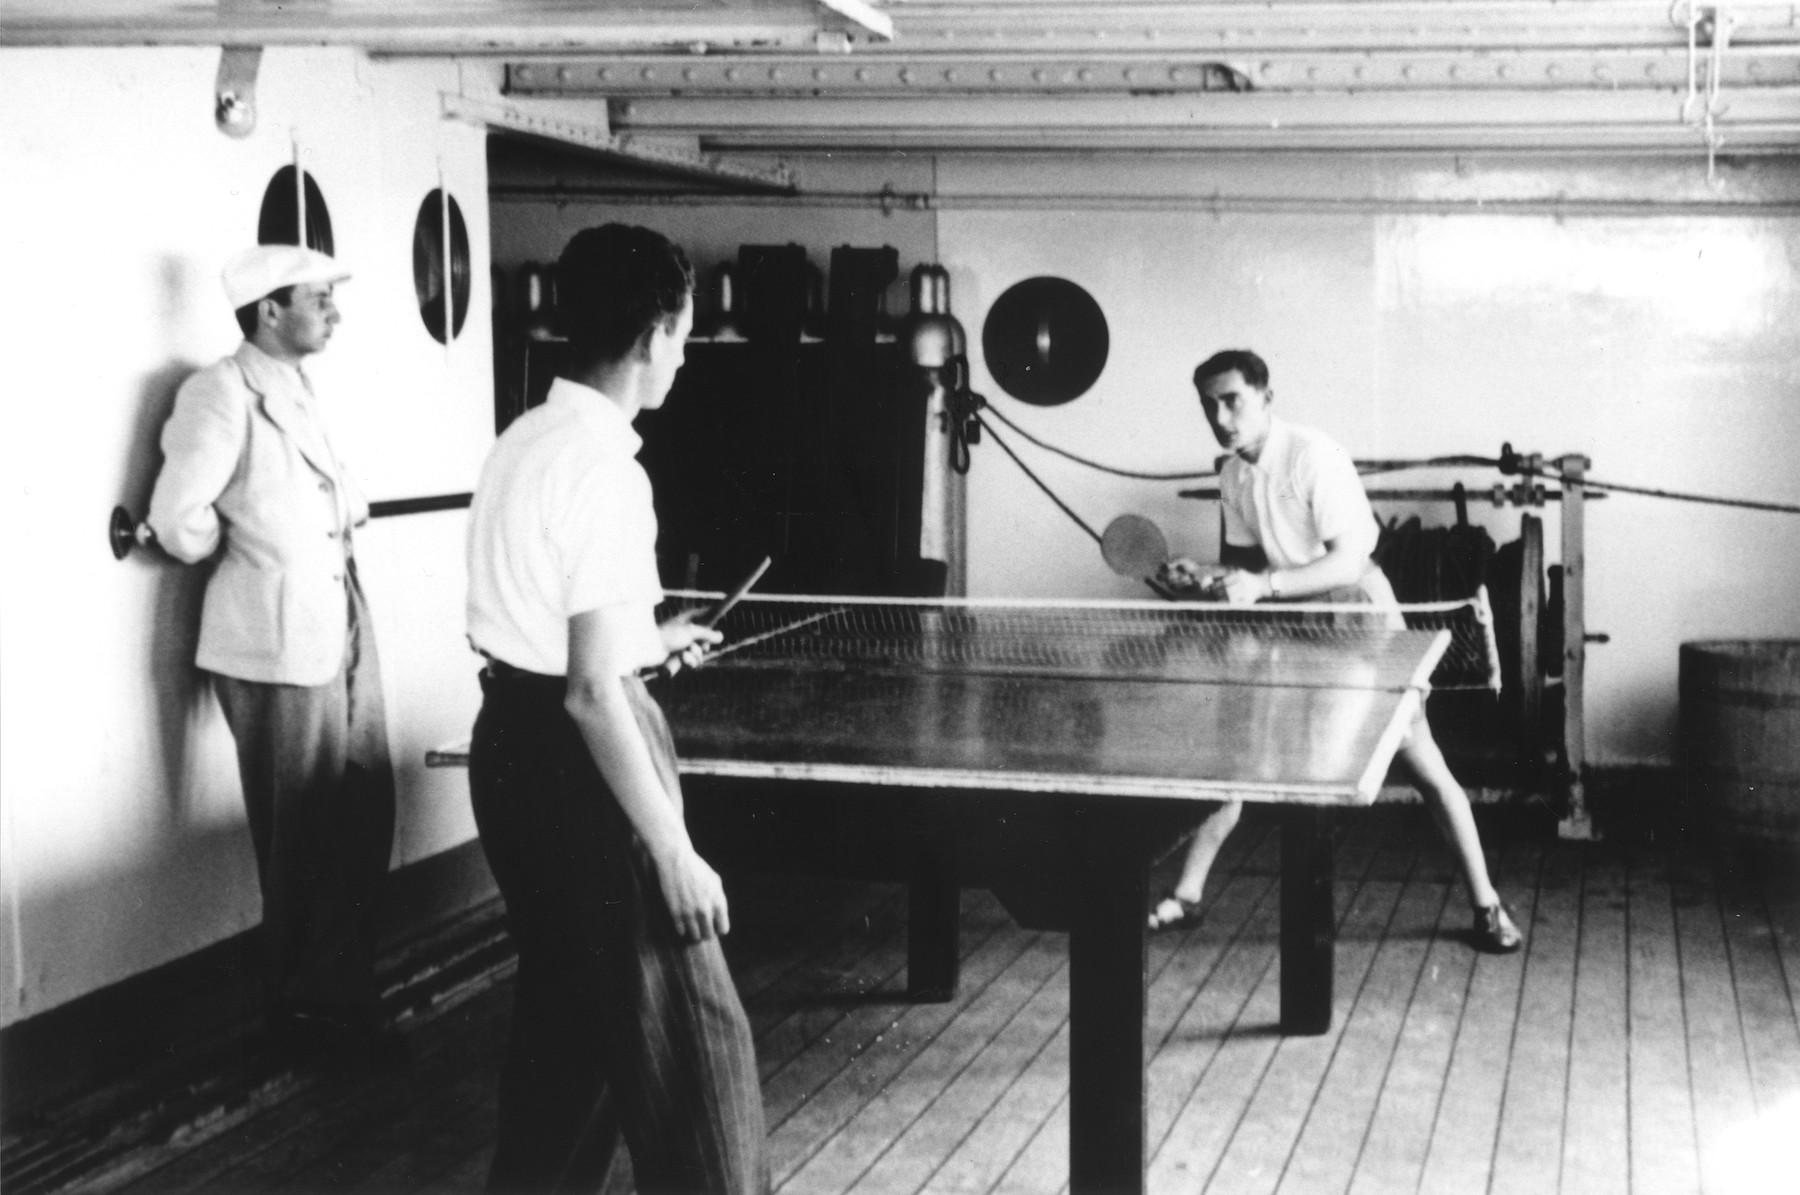 Fritz Buff (right) plays pingpong on board the MS St. Louis.